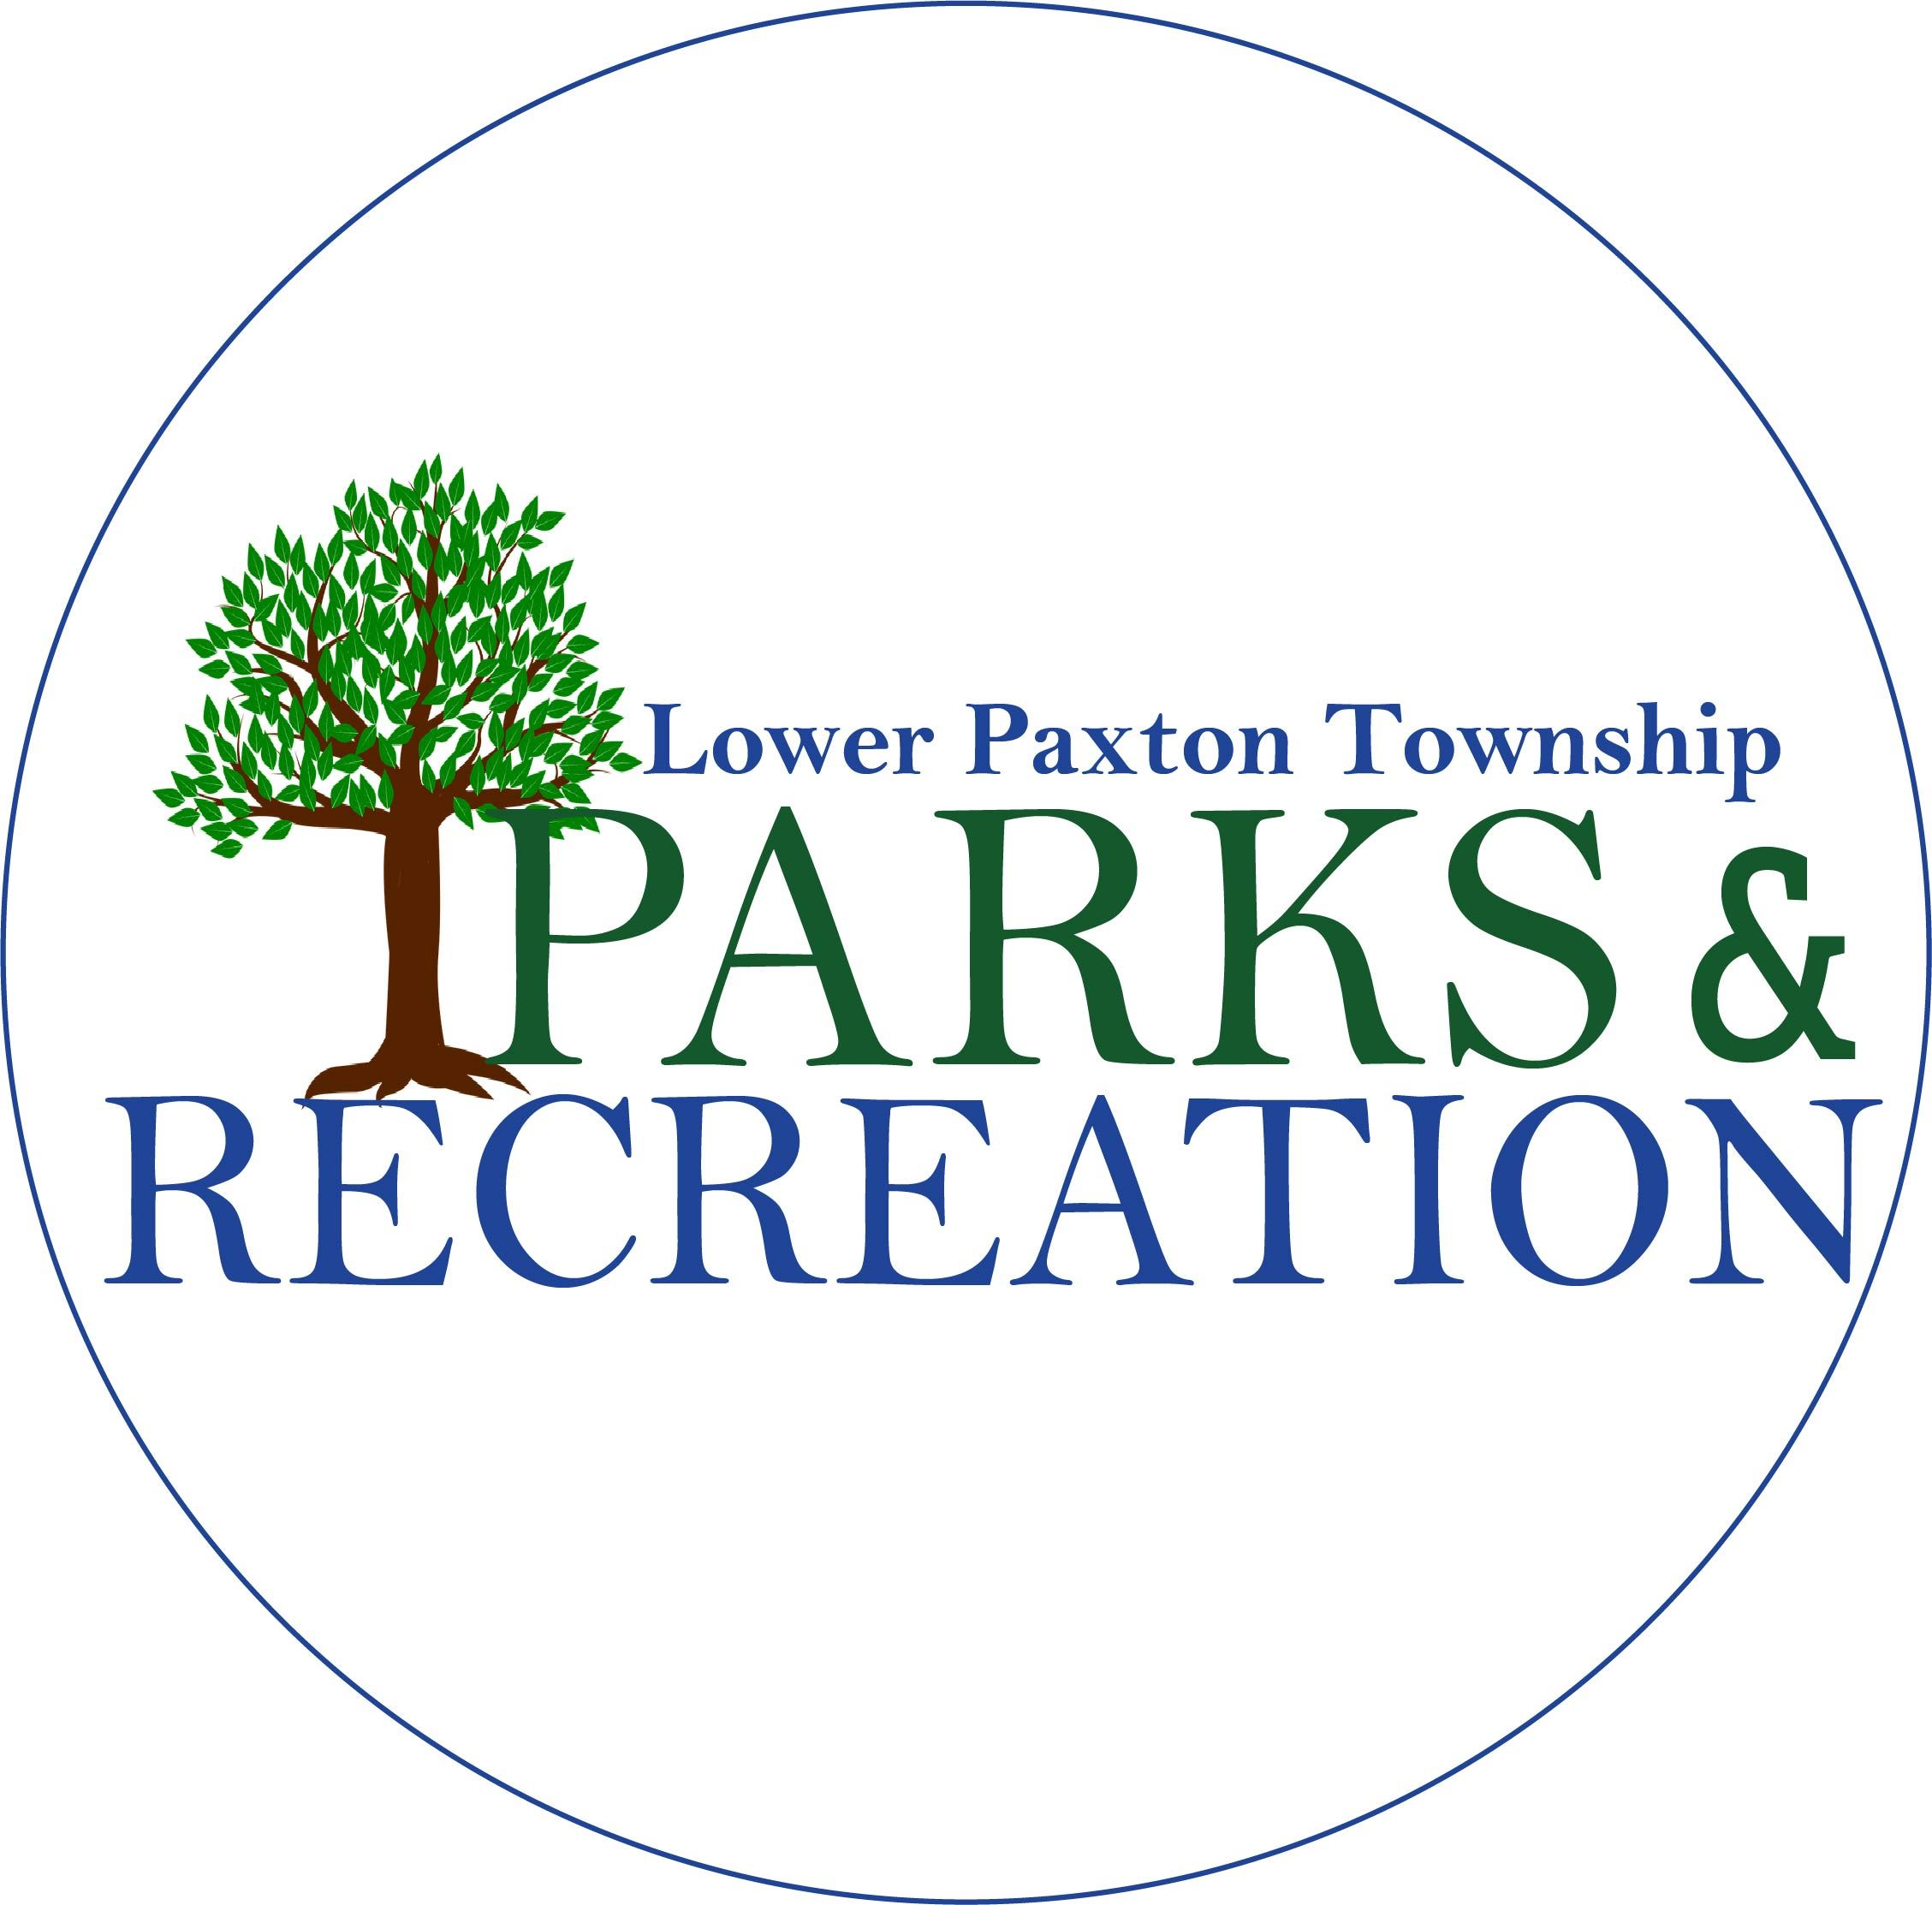 Parks and Recreation Circle Logo 2021